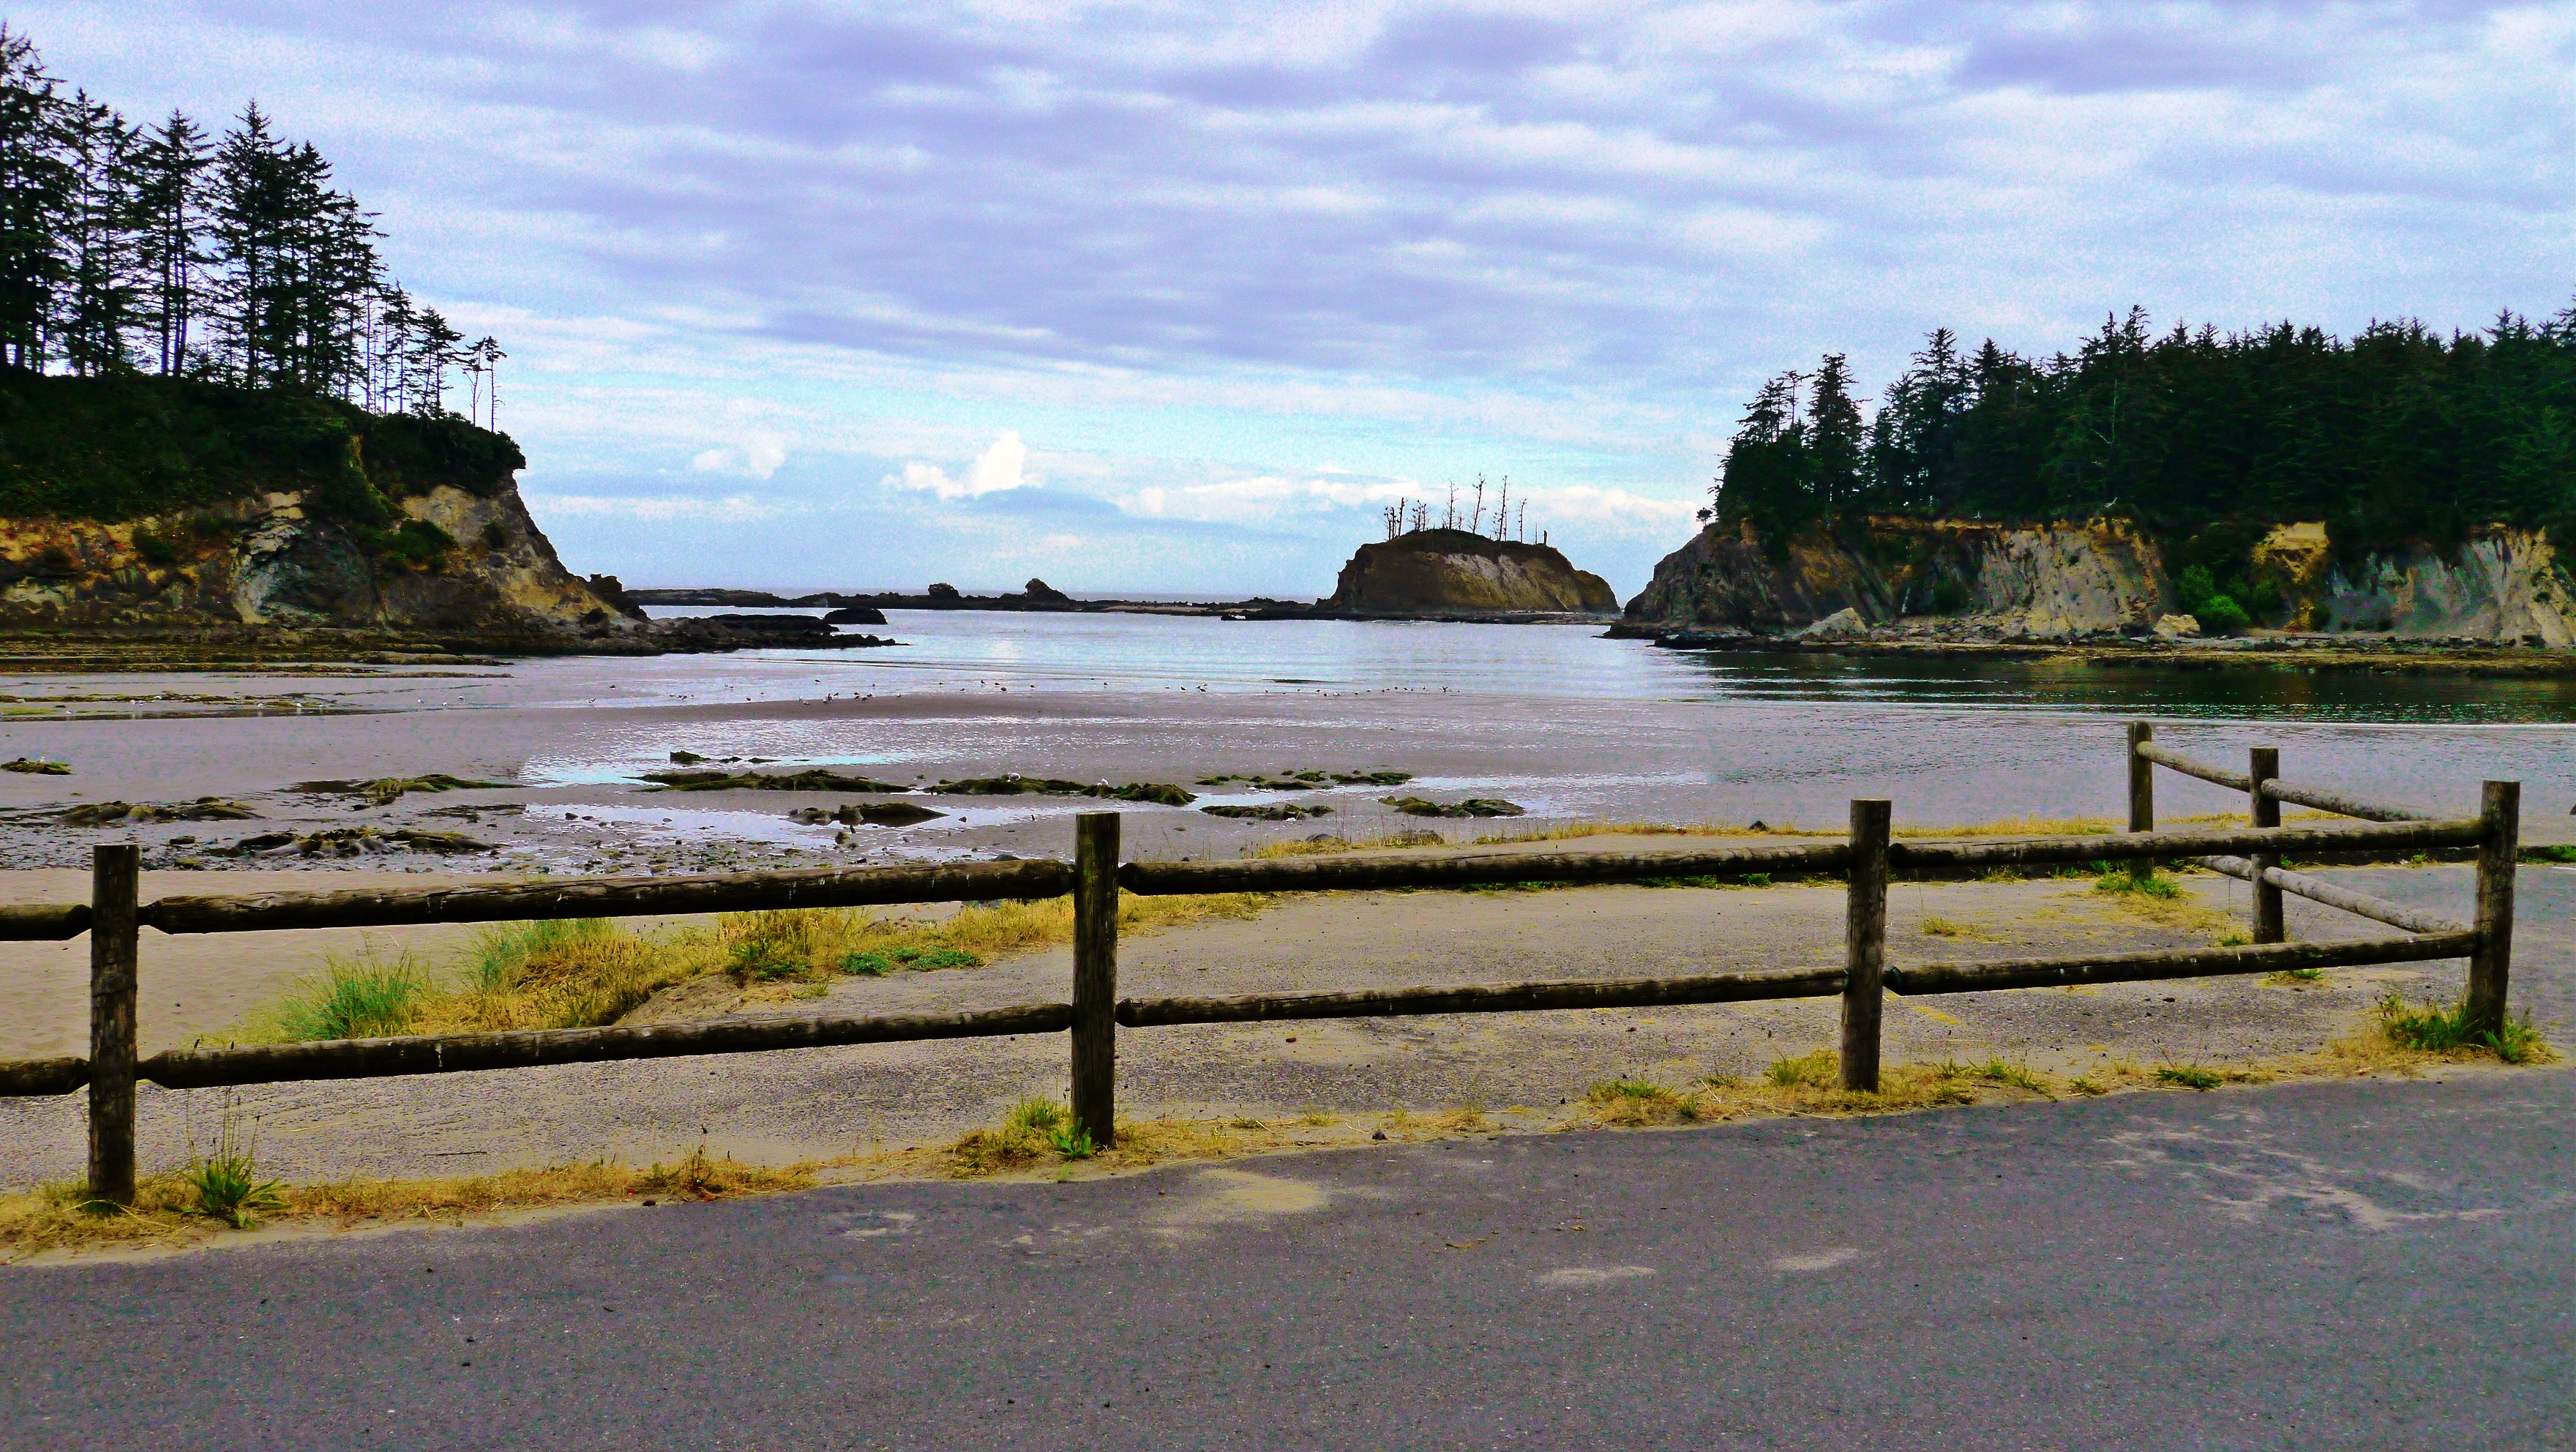 Photo of Sunset Bay State Park launch point taken from the parking lot